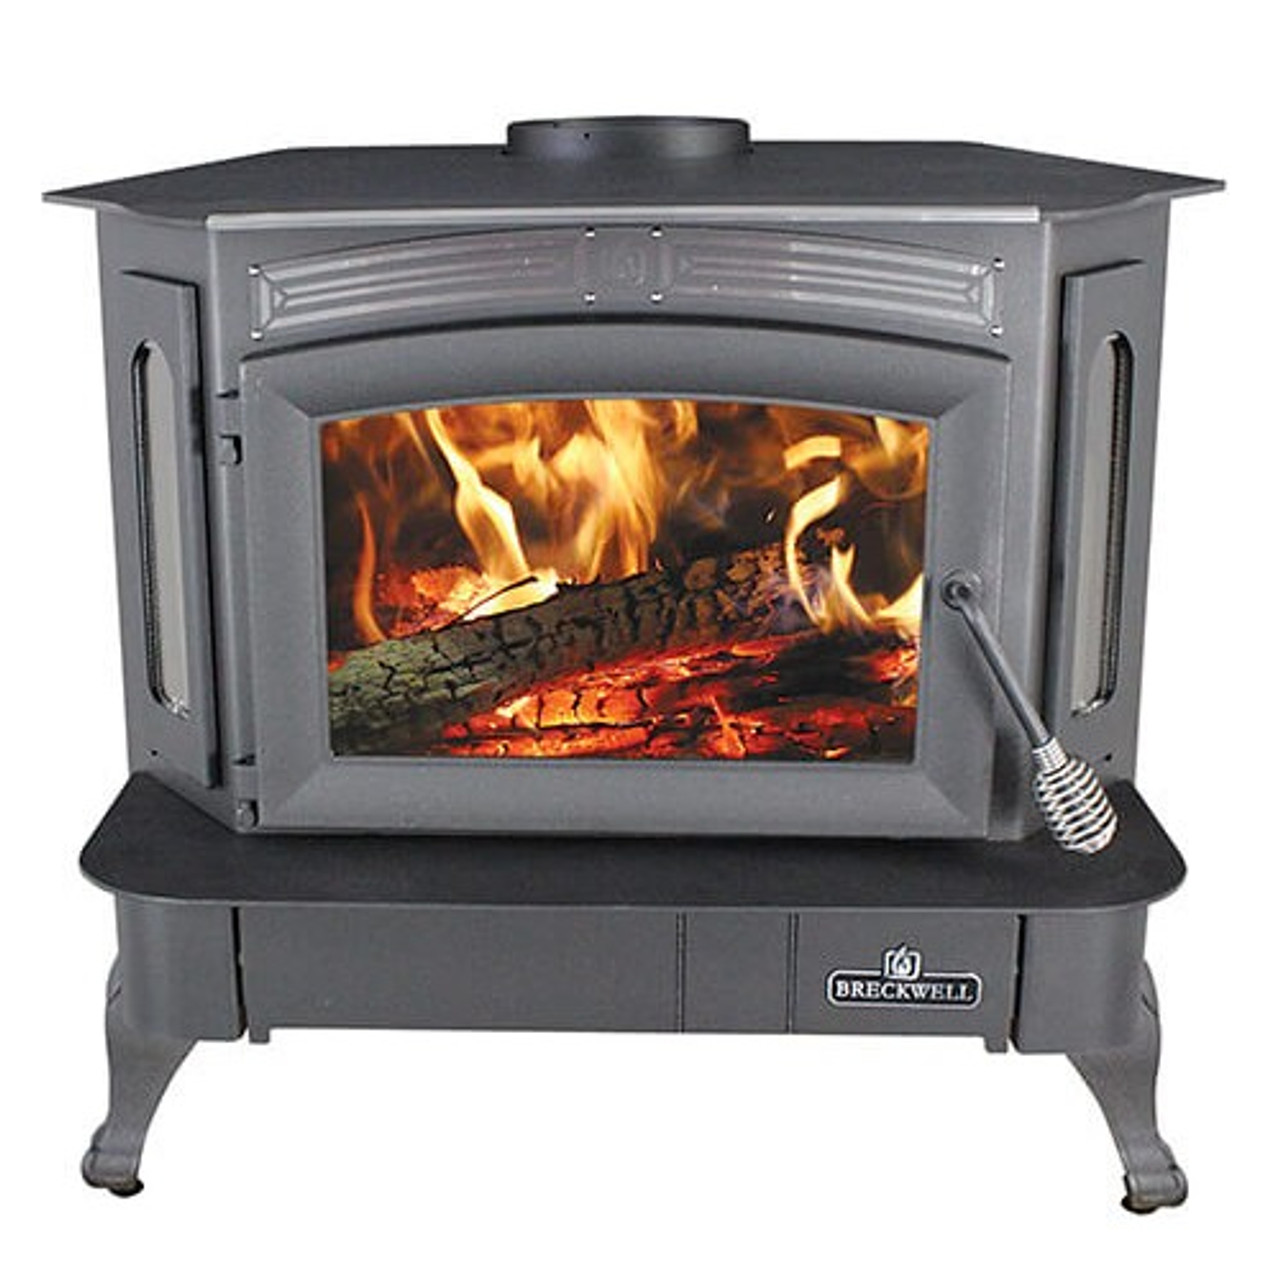 Breckwell SW940 Bay Front Wood Stove/Insert with Legs